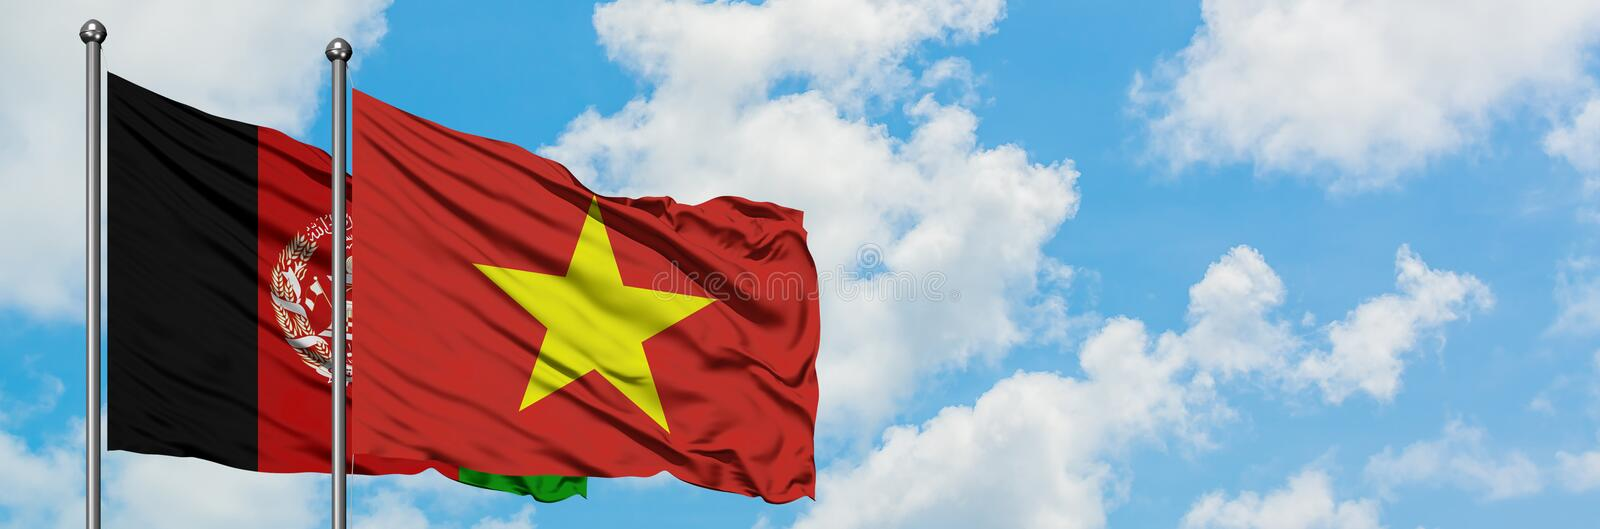 Afghanistan and Vietnam flag waving in the wind against white cloudy blue sky together. Diplomacy concept, international relations.  stock images